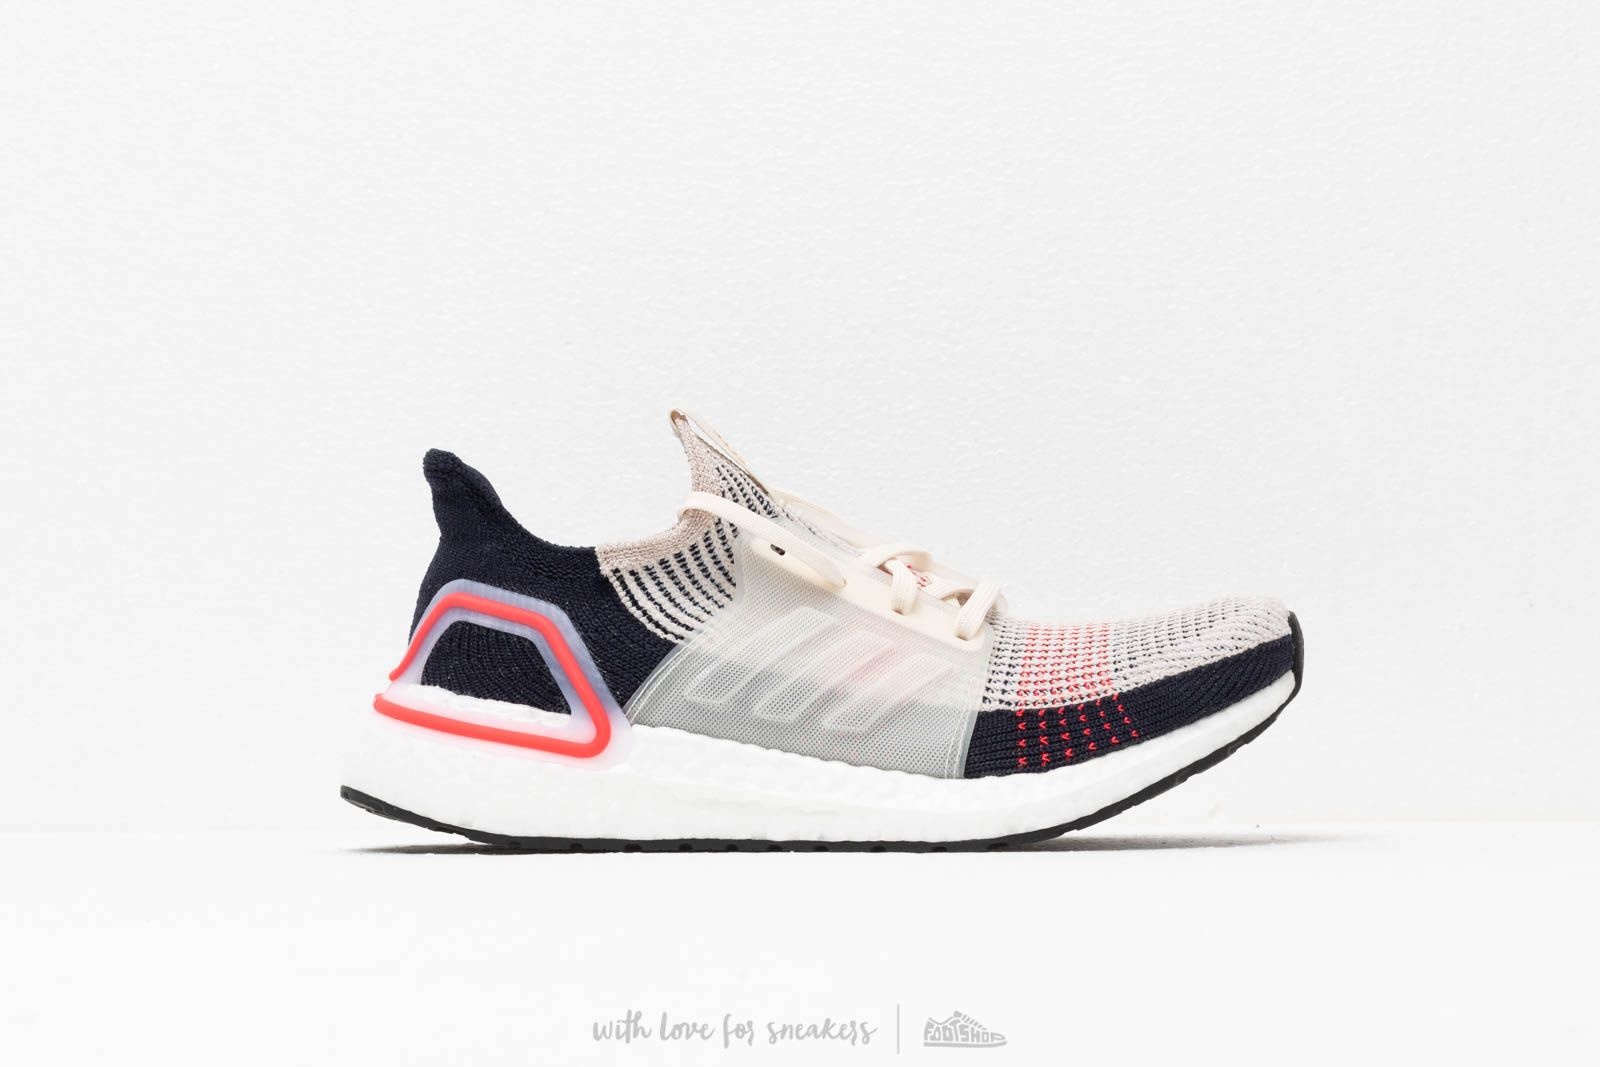 reputable site 6ad60 83b8a adidas UltraBOOST 19 W Clear Brown  Cloud White  Legend Ink at a great price